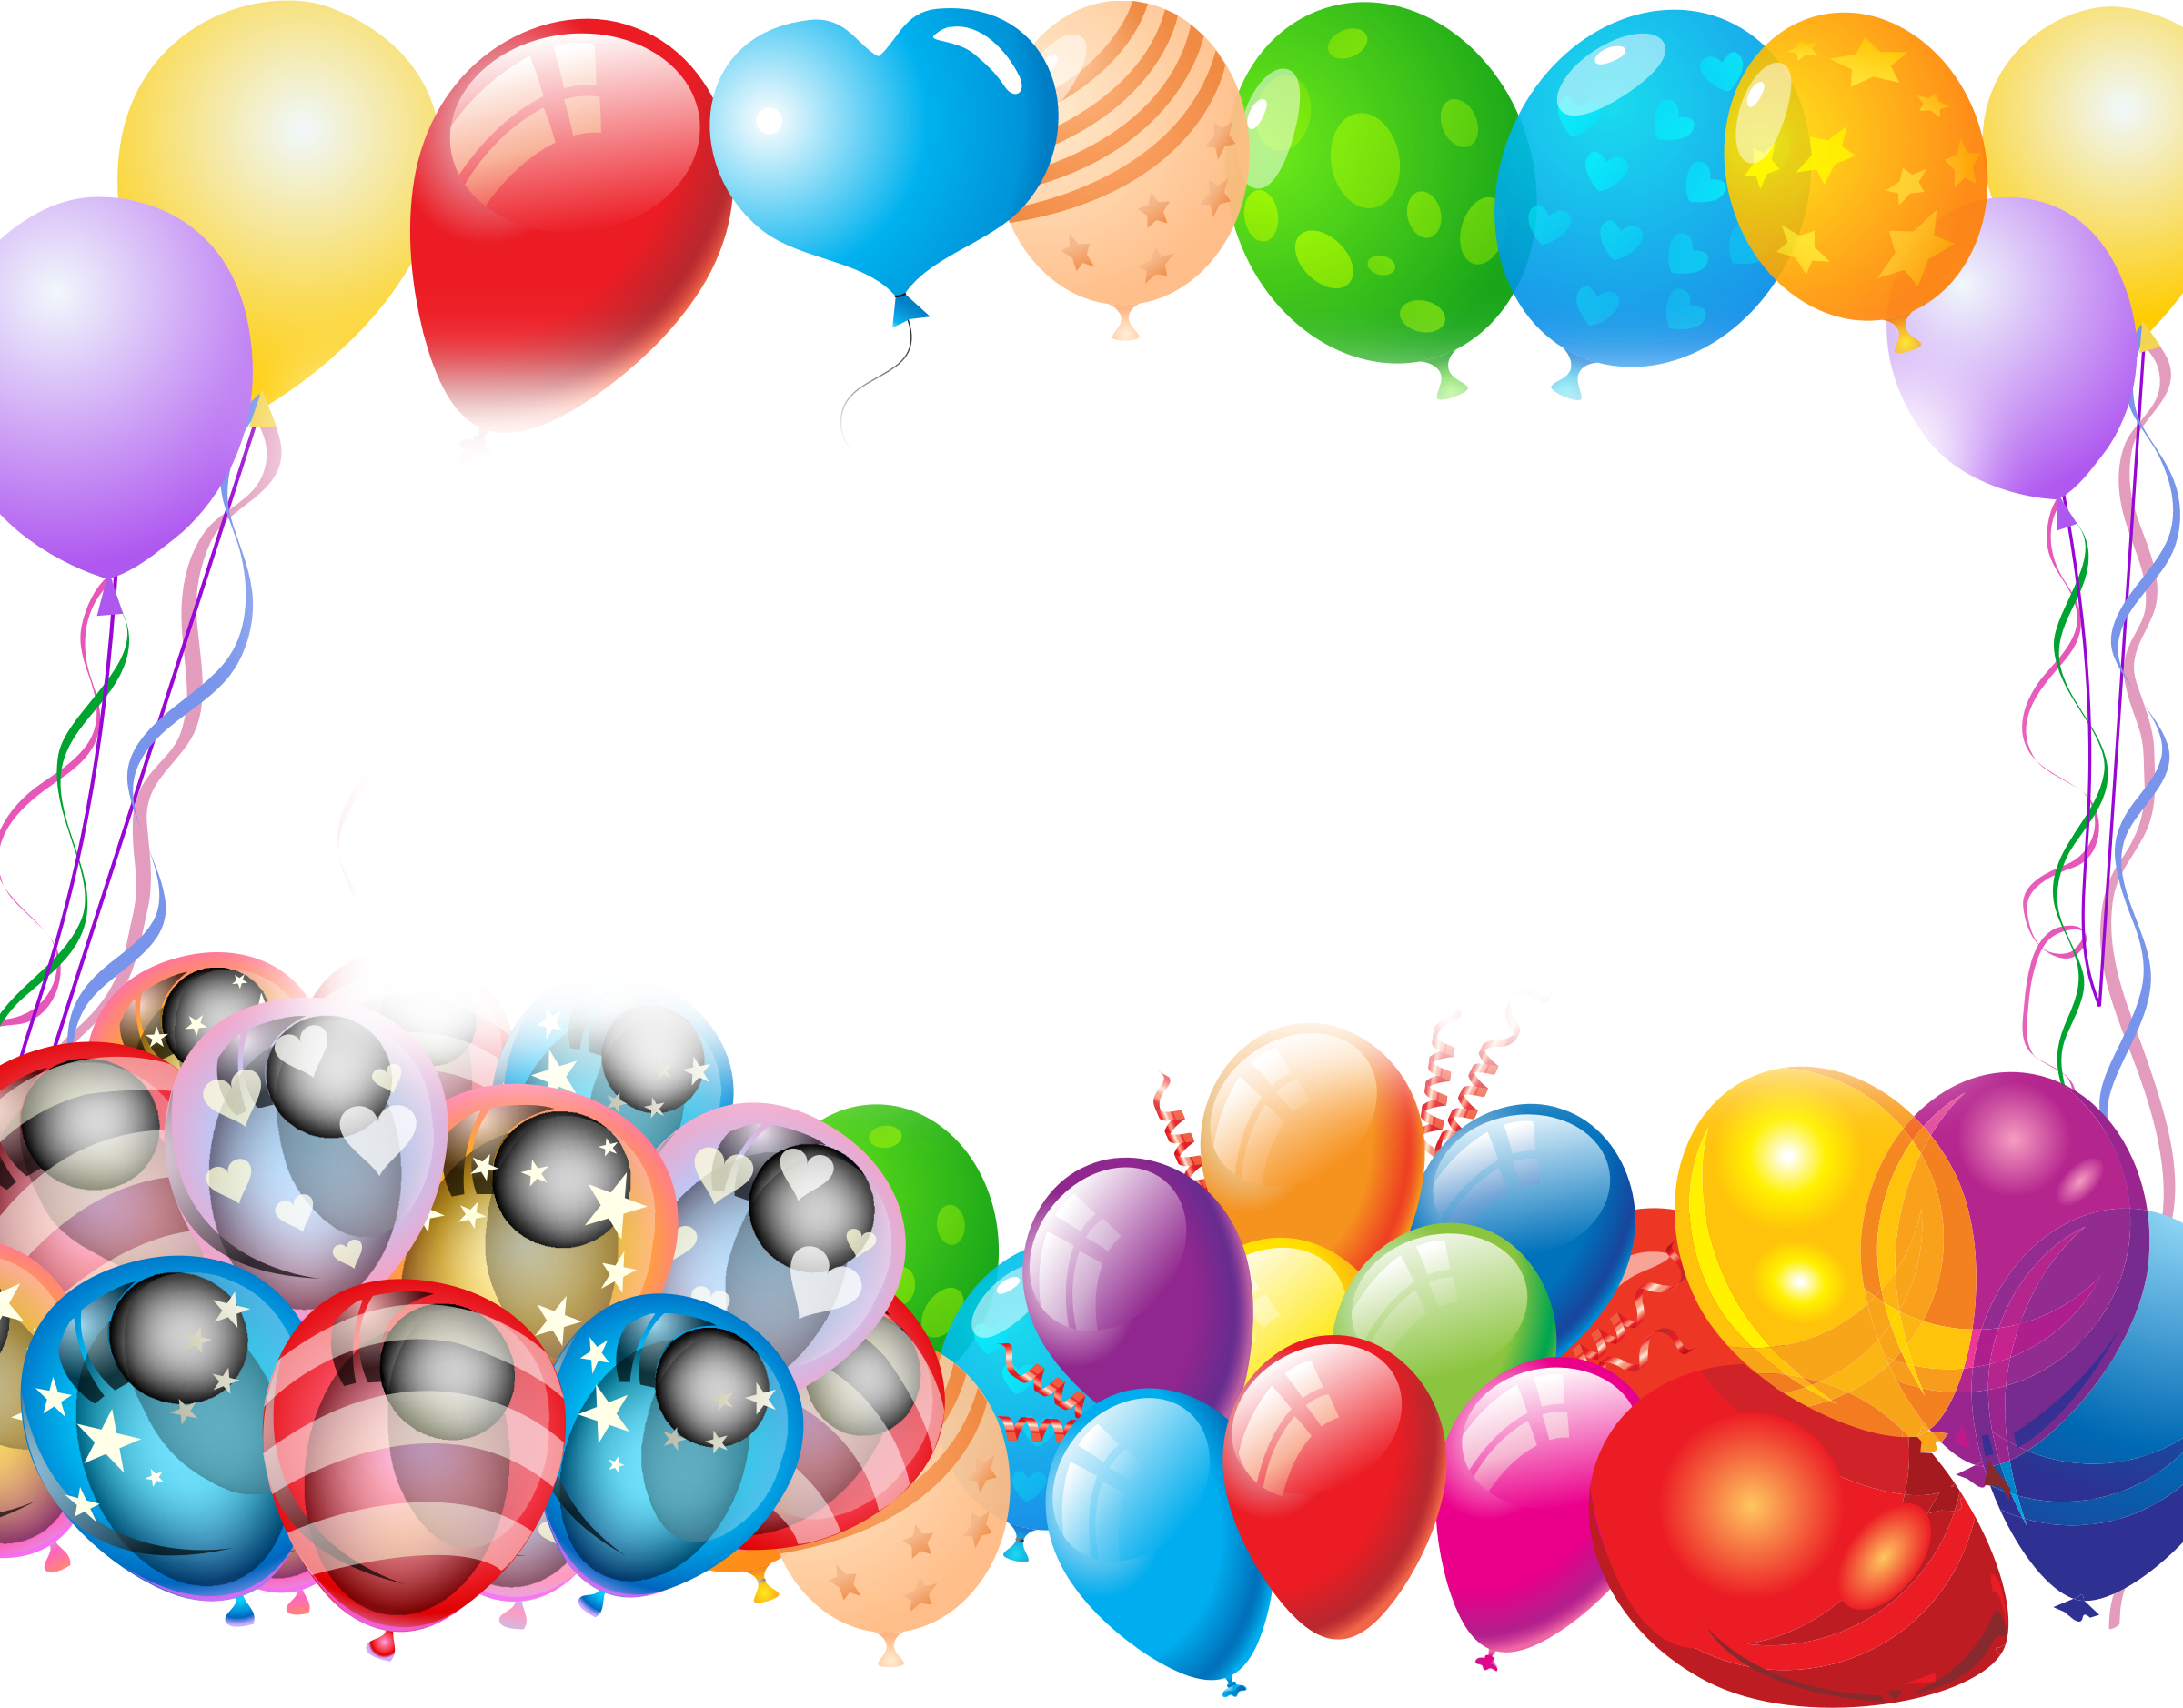 Colorful Party Balloons by GDJ